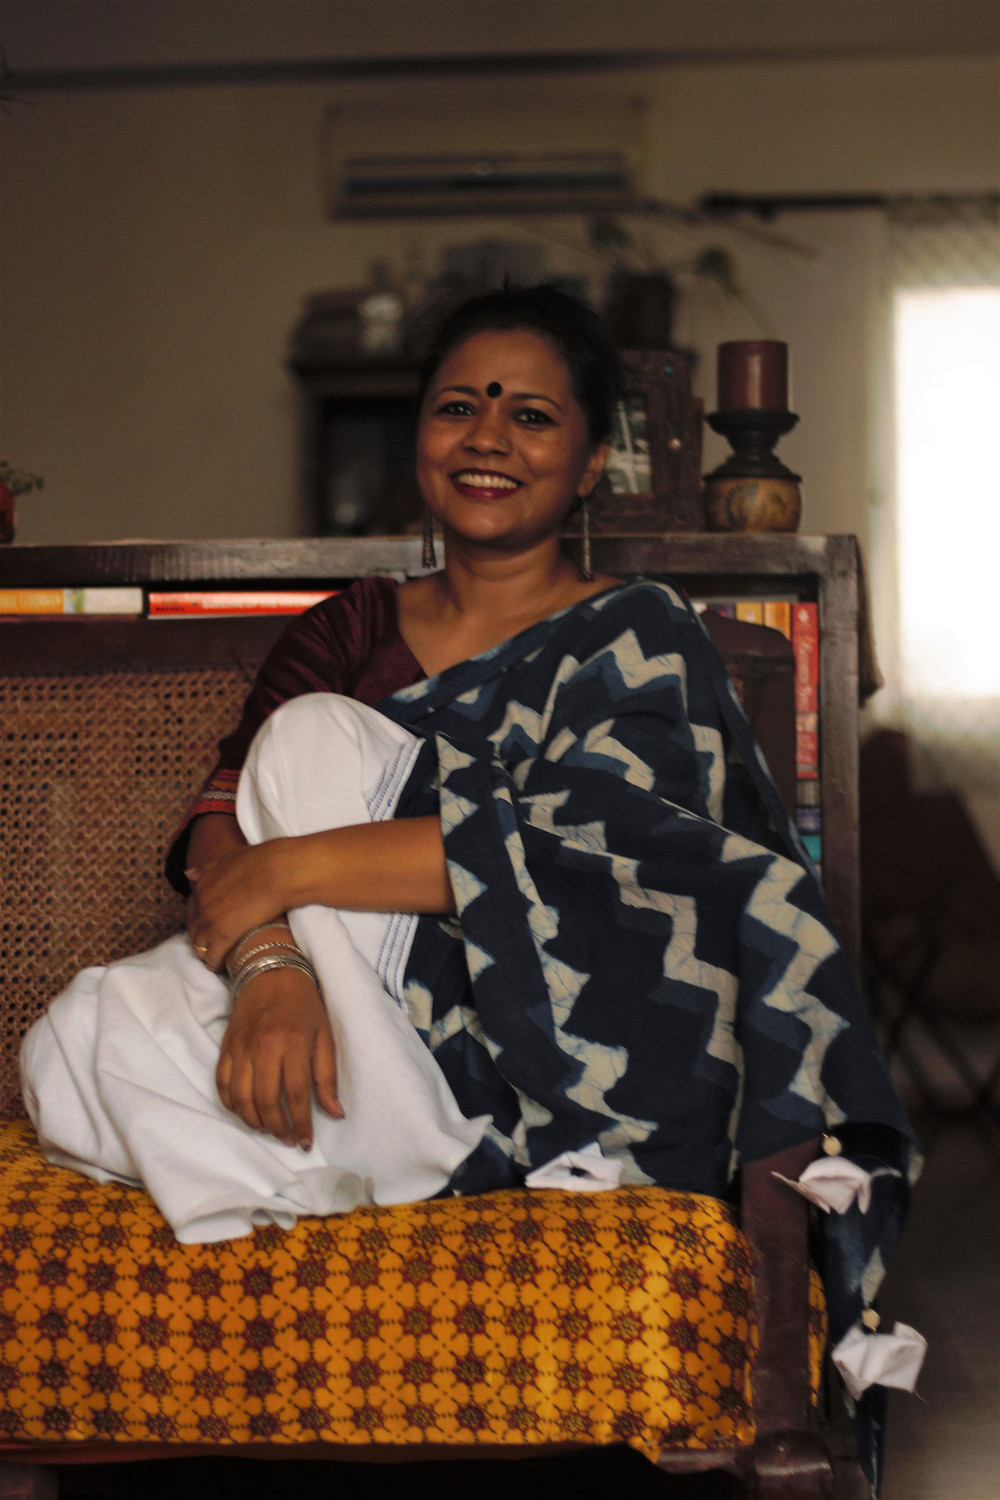 Patchworked sari with white cotton and indigo fabrics